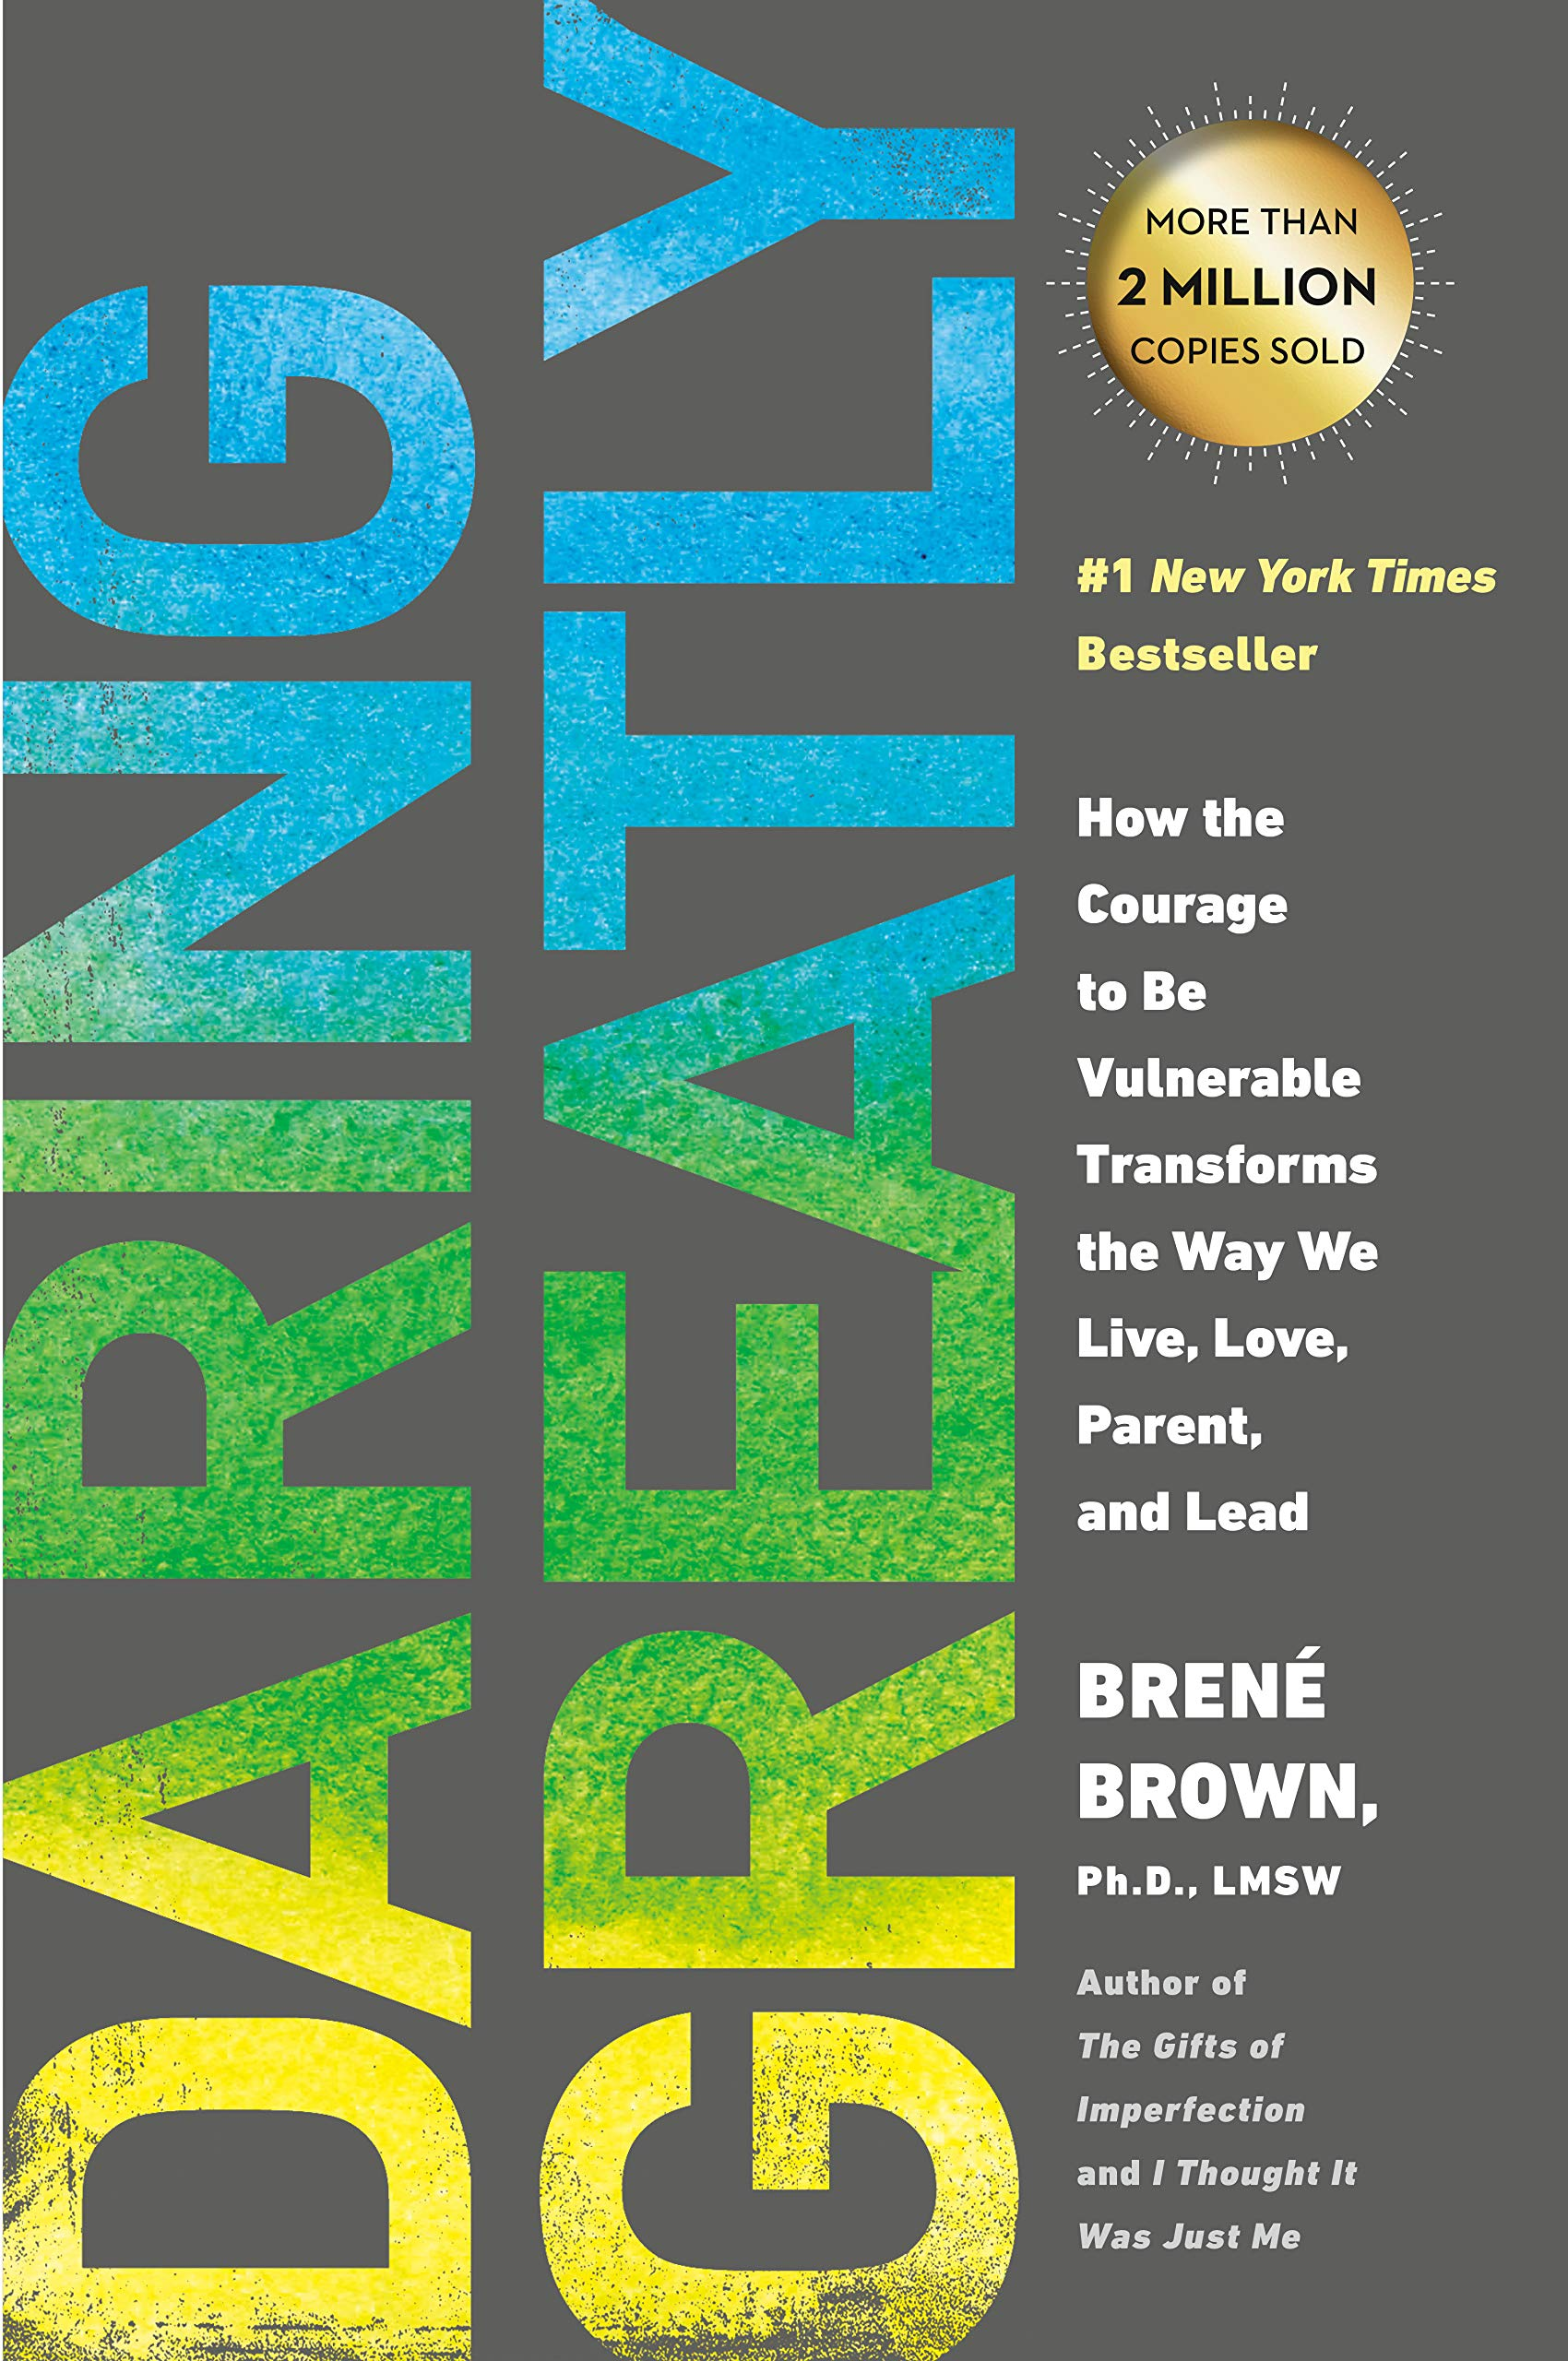 Brene Brown Daring Greatly book cover. #books #brenebrown #personalgrowth #courage #spiritualjourney #daringgreatly